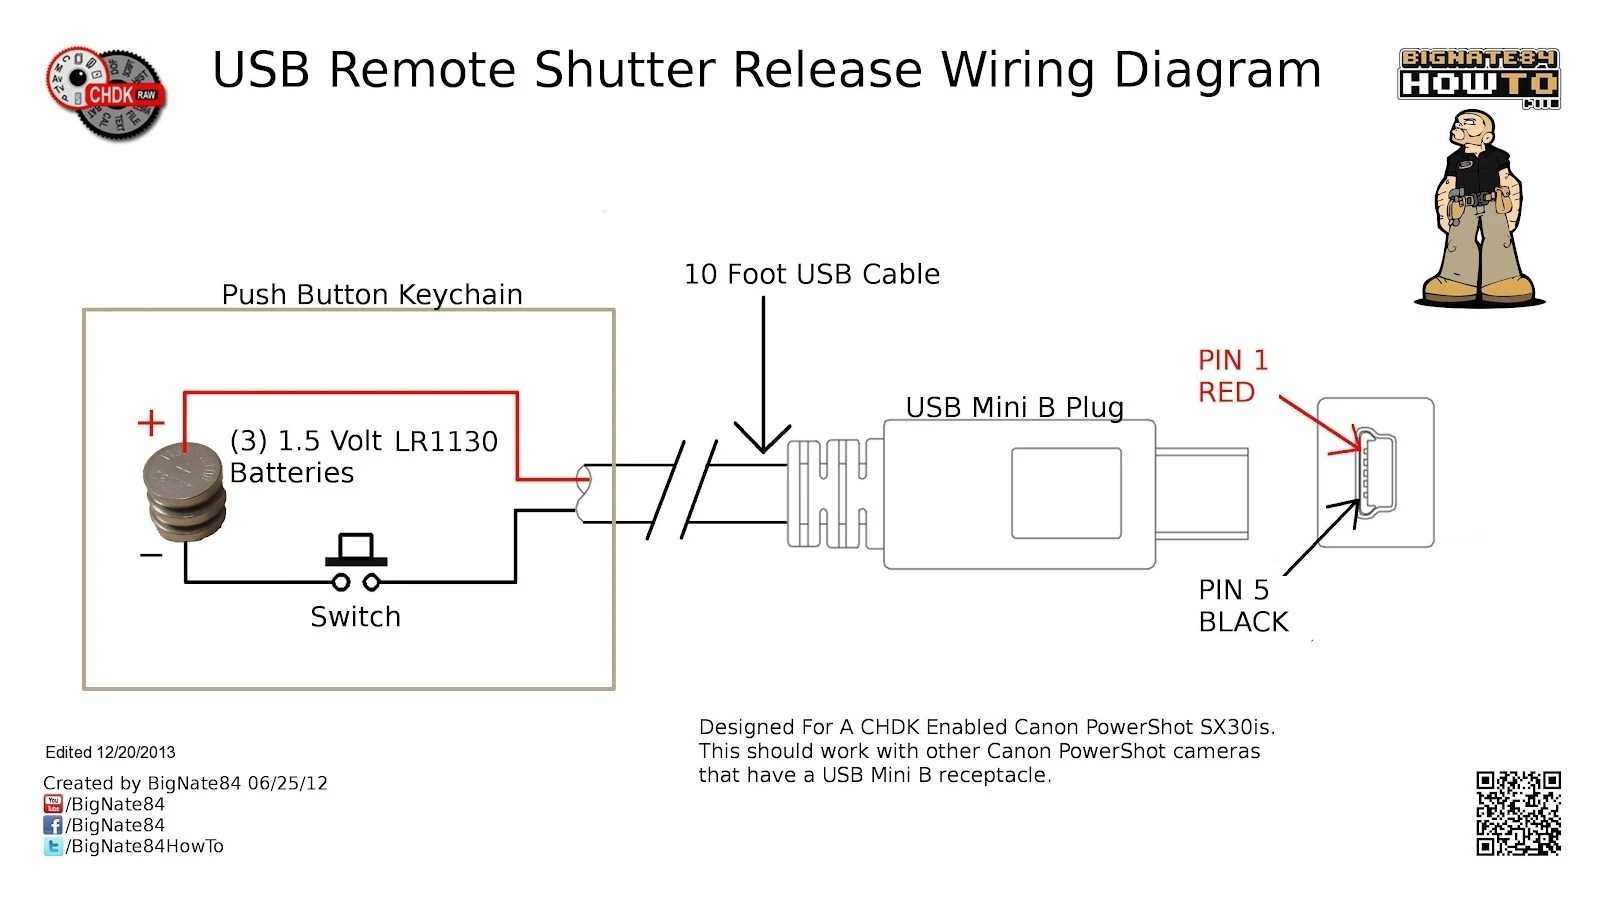 playstation 2 to usb wiring diagram central heating programmer great installation of image 0001 remote shutter jpeg chdk wiki rh wikia com ps2